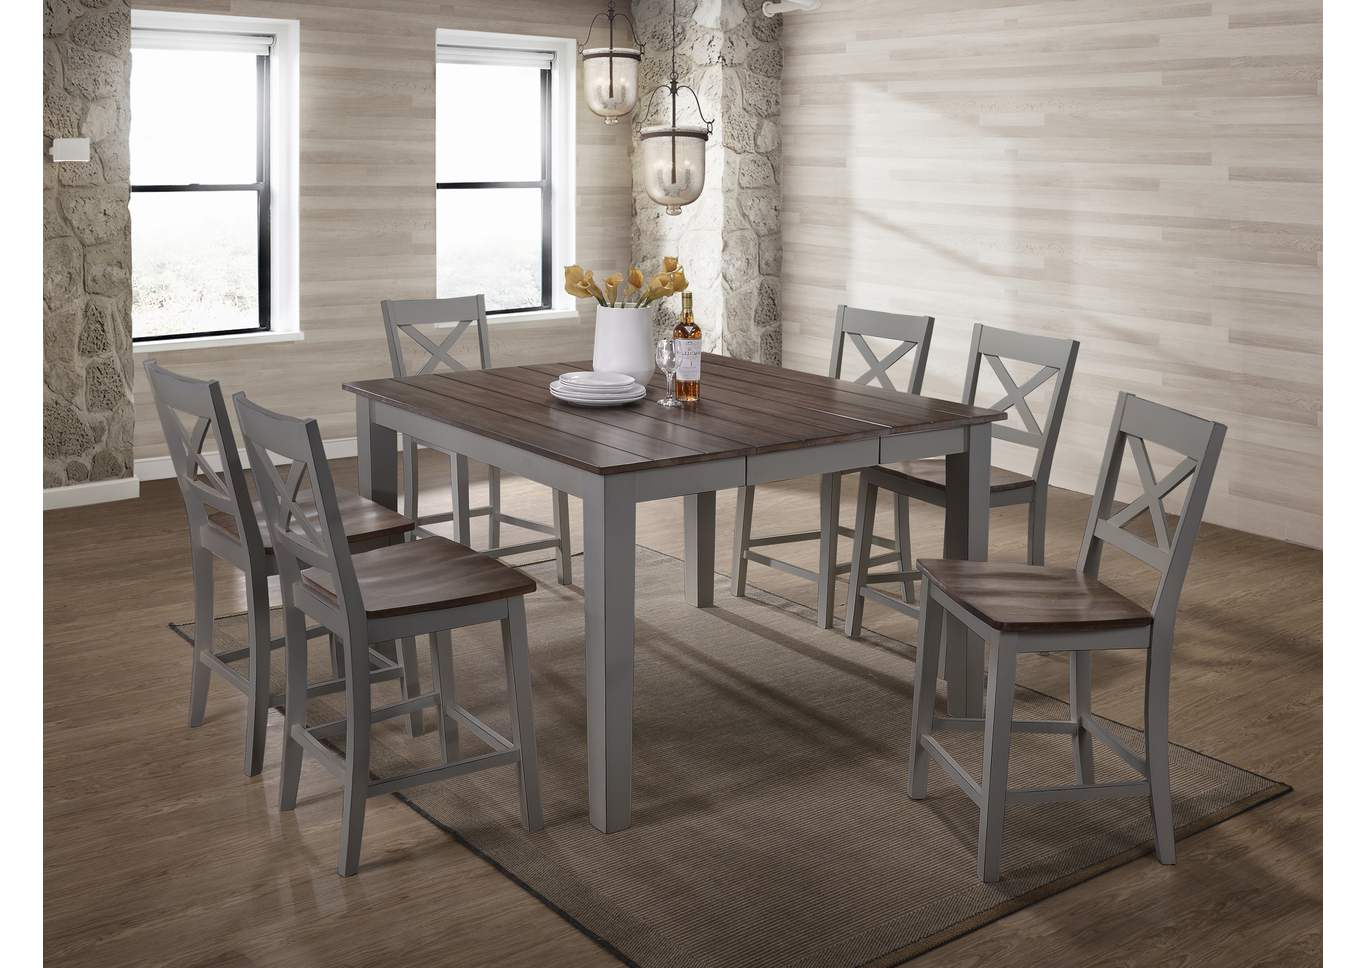 Heavy Duty Folding Picnic Table, 5059 A La Carte Gray Casual Dining Collection Sit Sleep Walker S Furniture